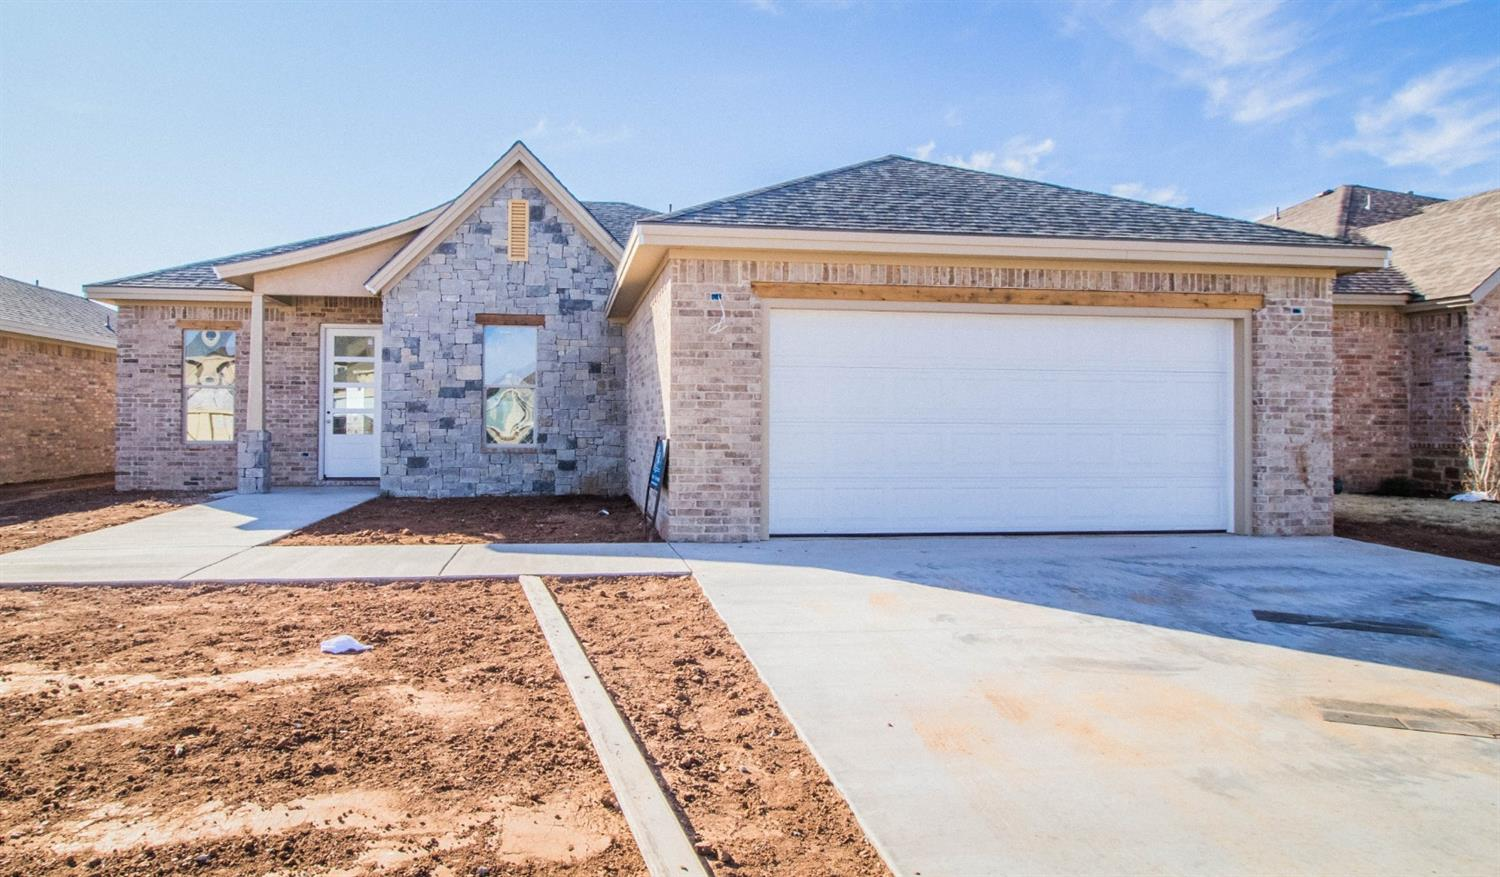 Check out this Amazing Kim Craig Home. This 3/2/2  with an office is stunning. The floor plan is fun and has a great flow. Stone Wood is a new development that has front entry garages and is a great up and coming neighborhood.